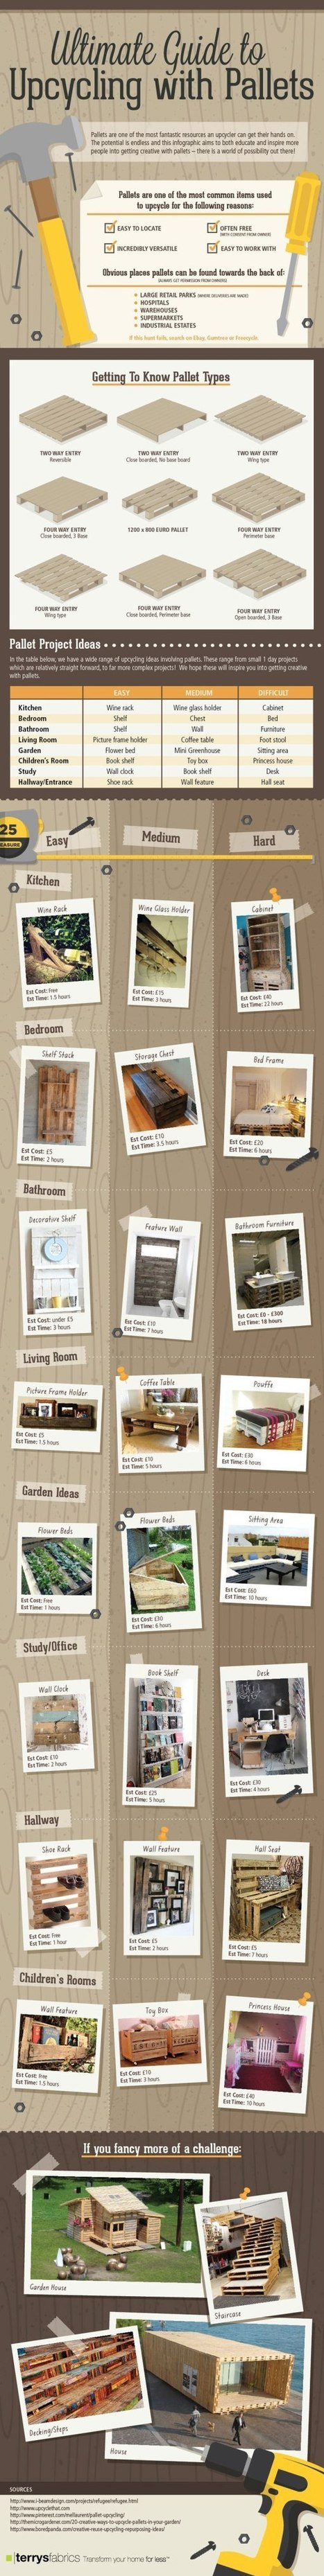 Ultimate Guide to Upcycling with Pallets | For DIY'ers | Scoop.it